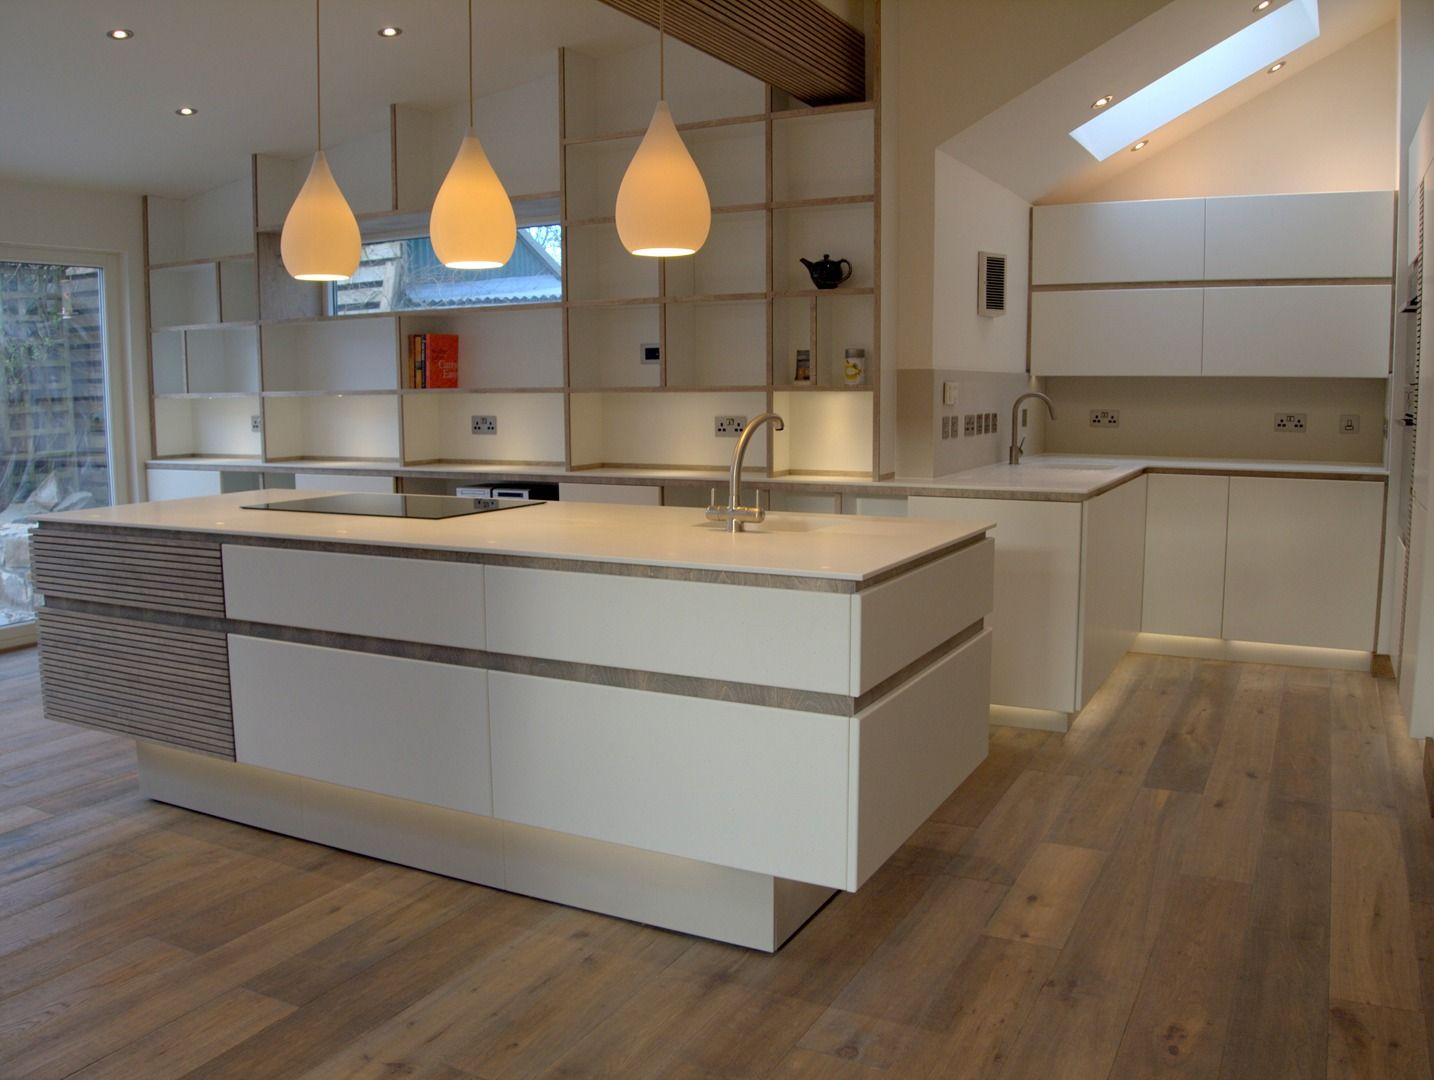 Concept kitchen martyn kemp makewood kitchen and house